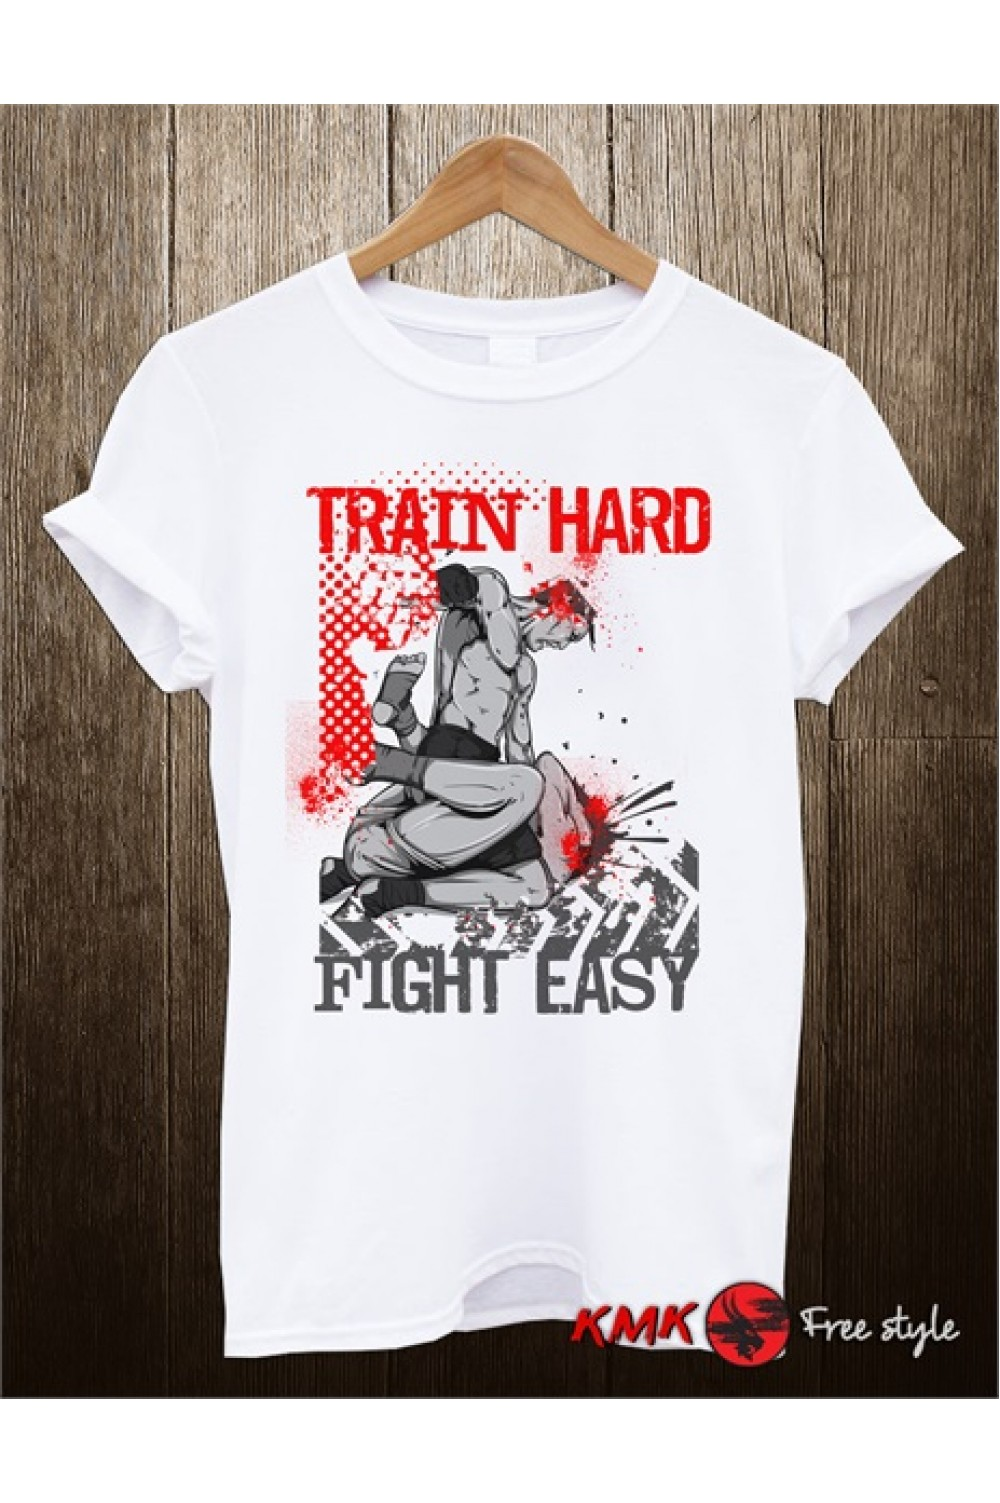 Train Hard Printed T shirt | Sport Tee | Fitness T-shirt | Long and Short Sleeves Shirt